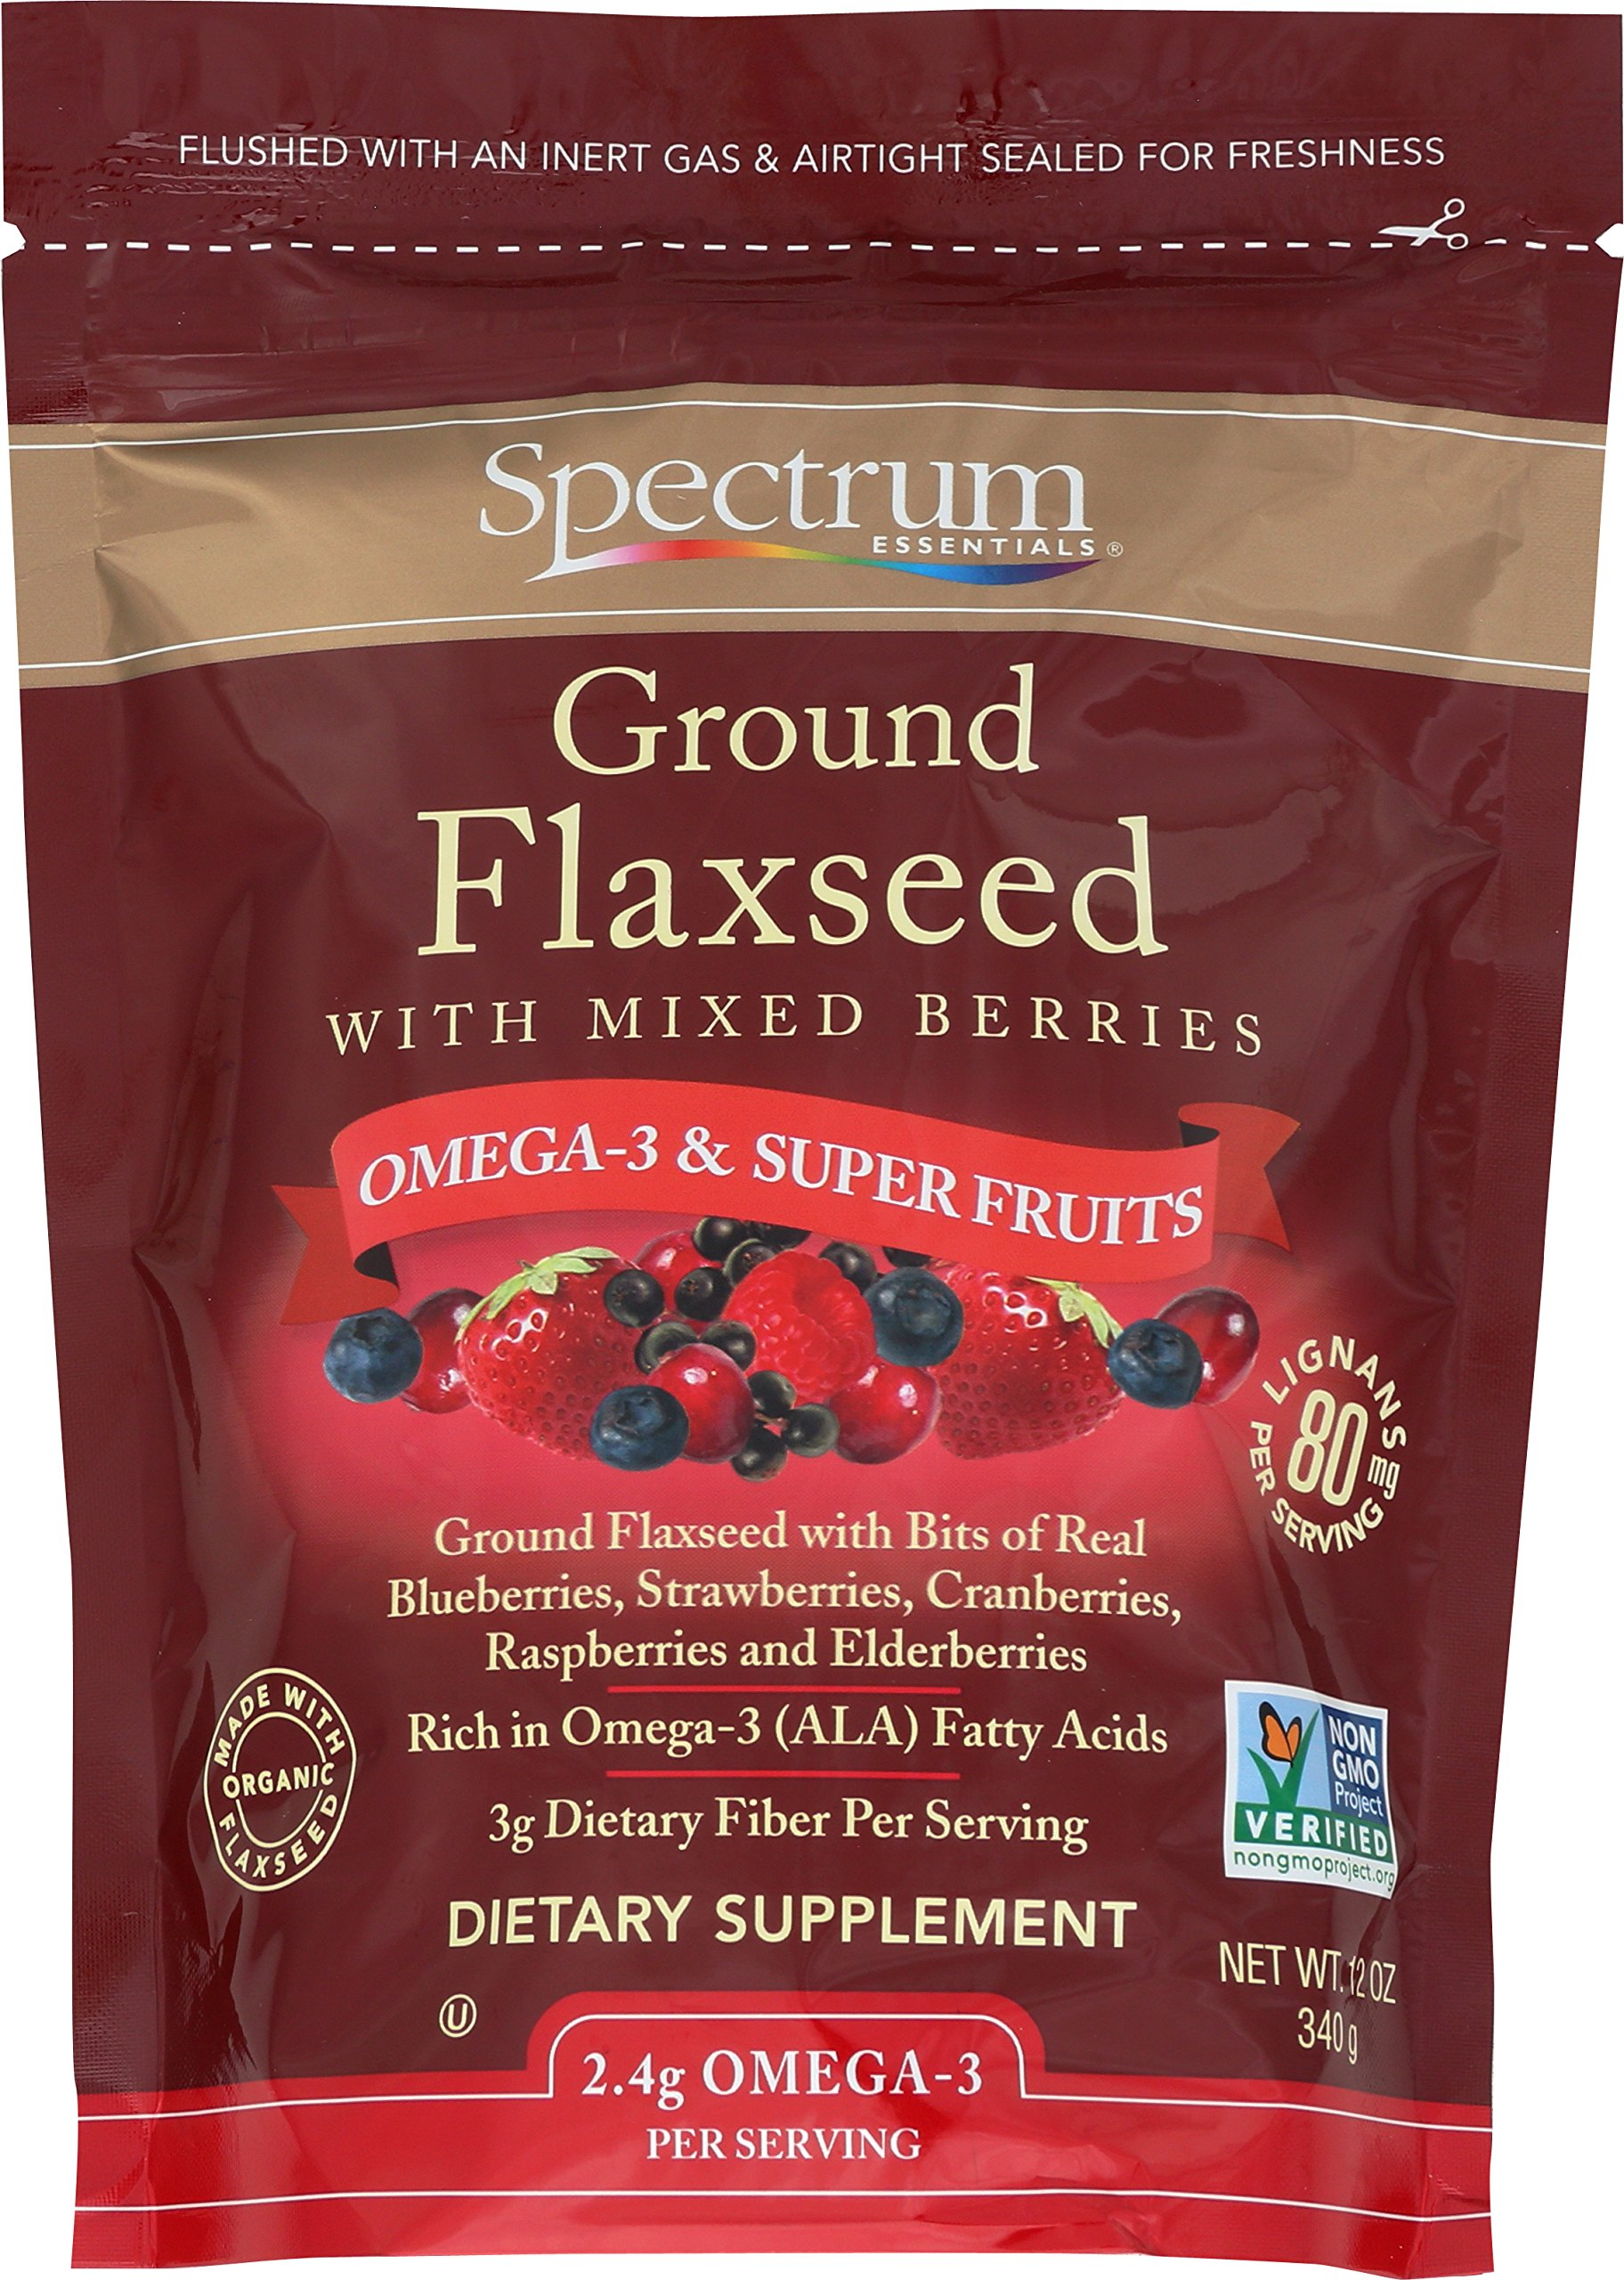 Spectrum Essentials Ground Flaxseed with Mixed Berries, 12 Ounce